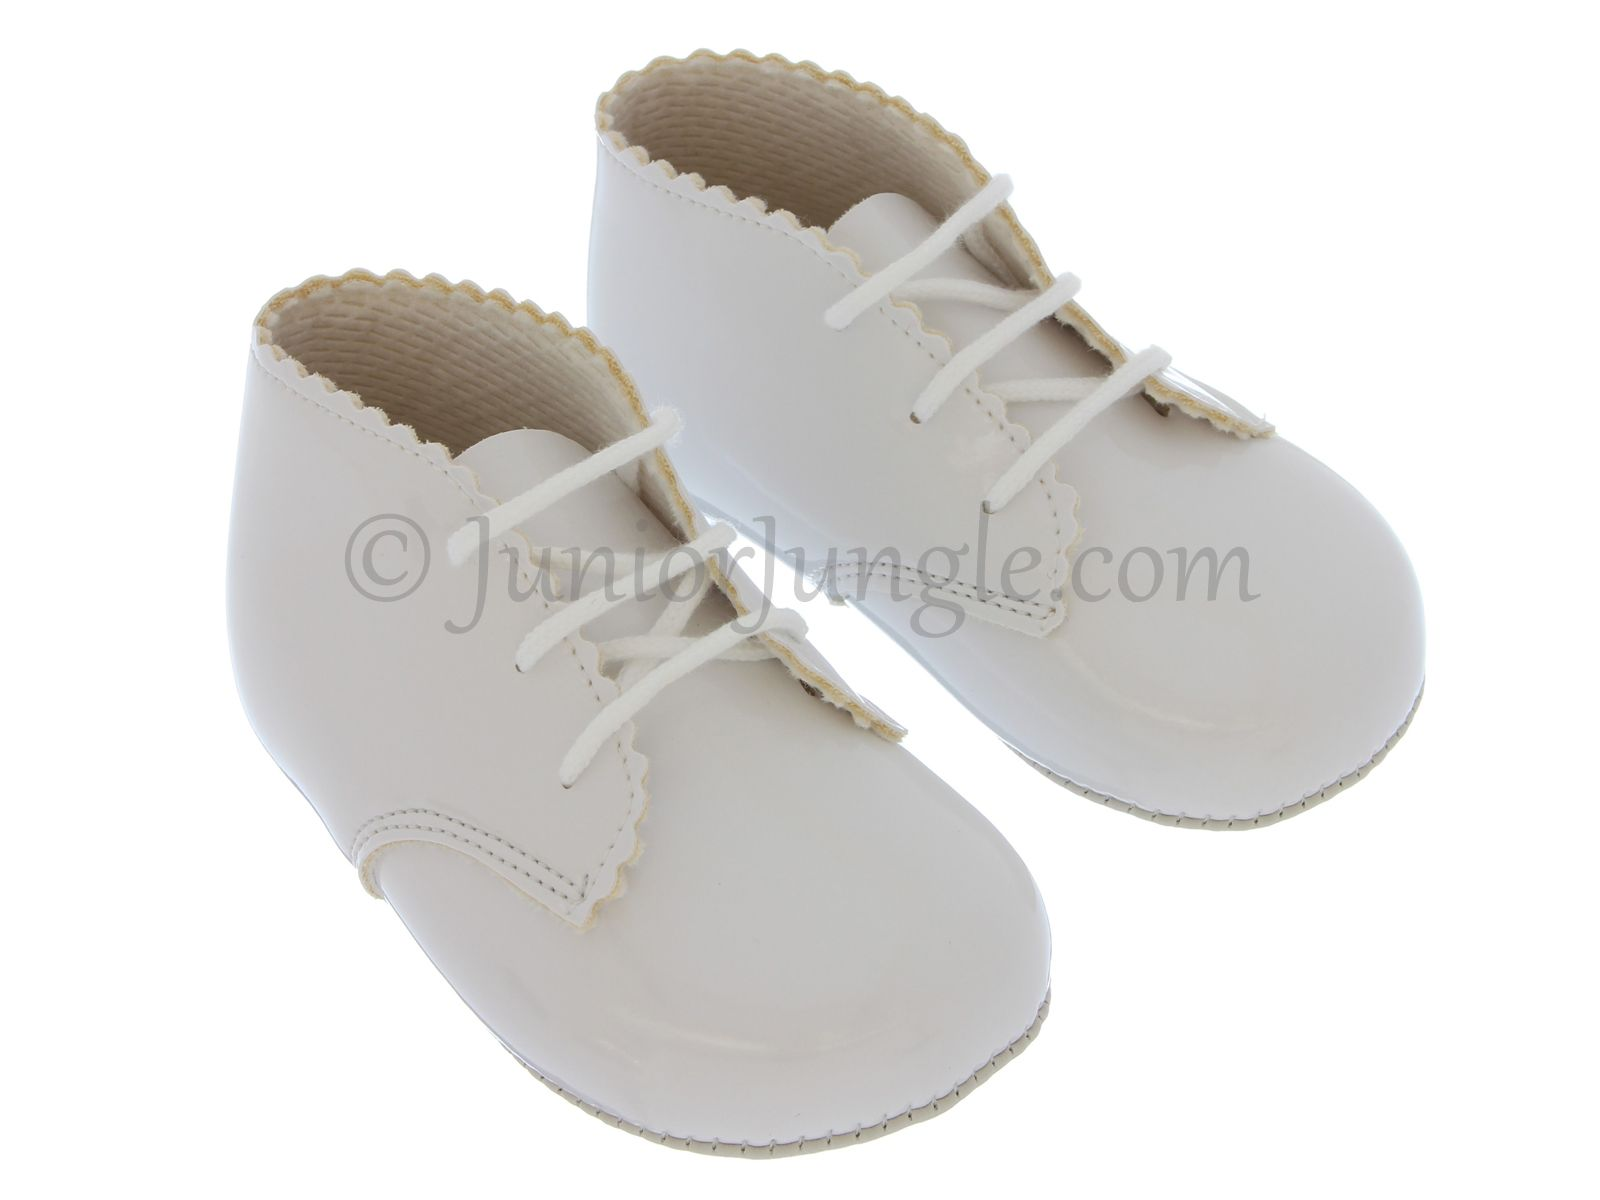 Soft pre-walker first pram bootees for babies, white patent with decorative edging.